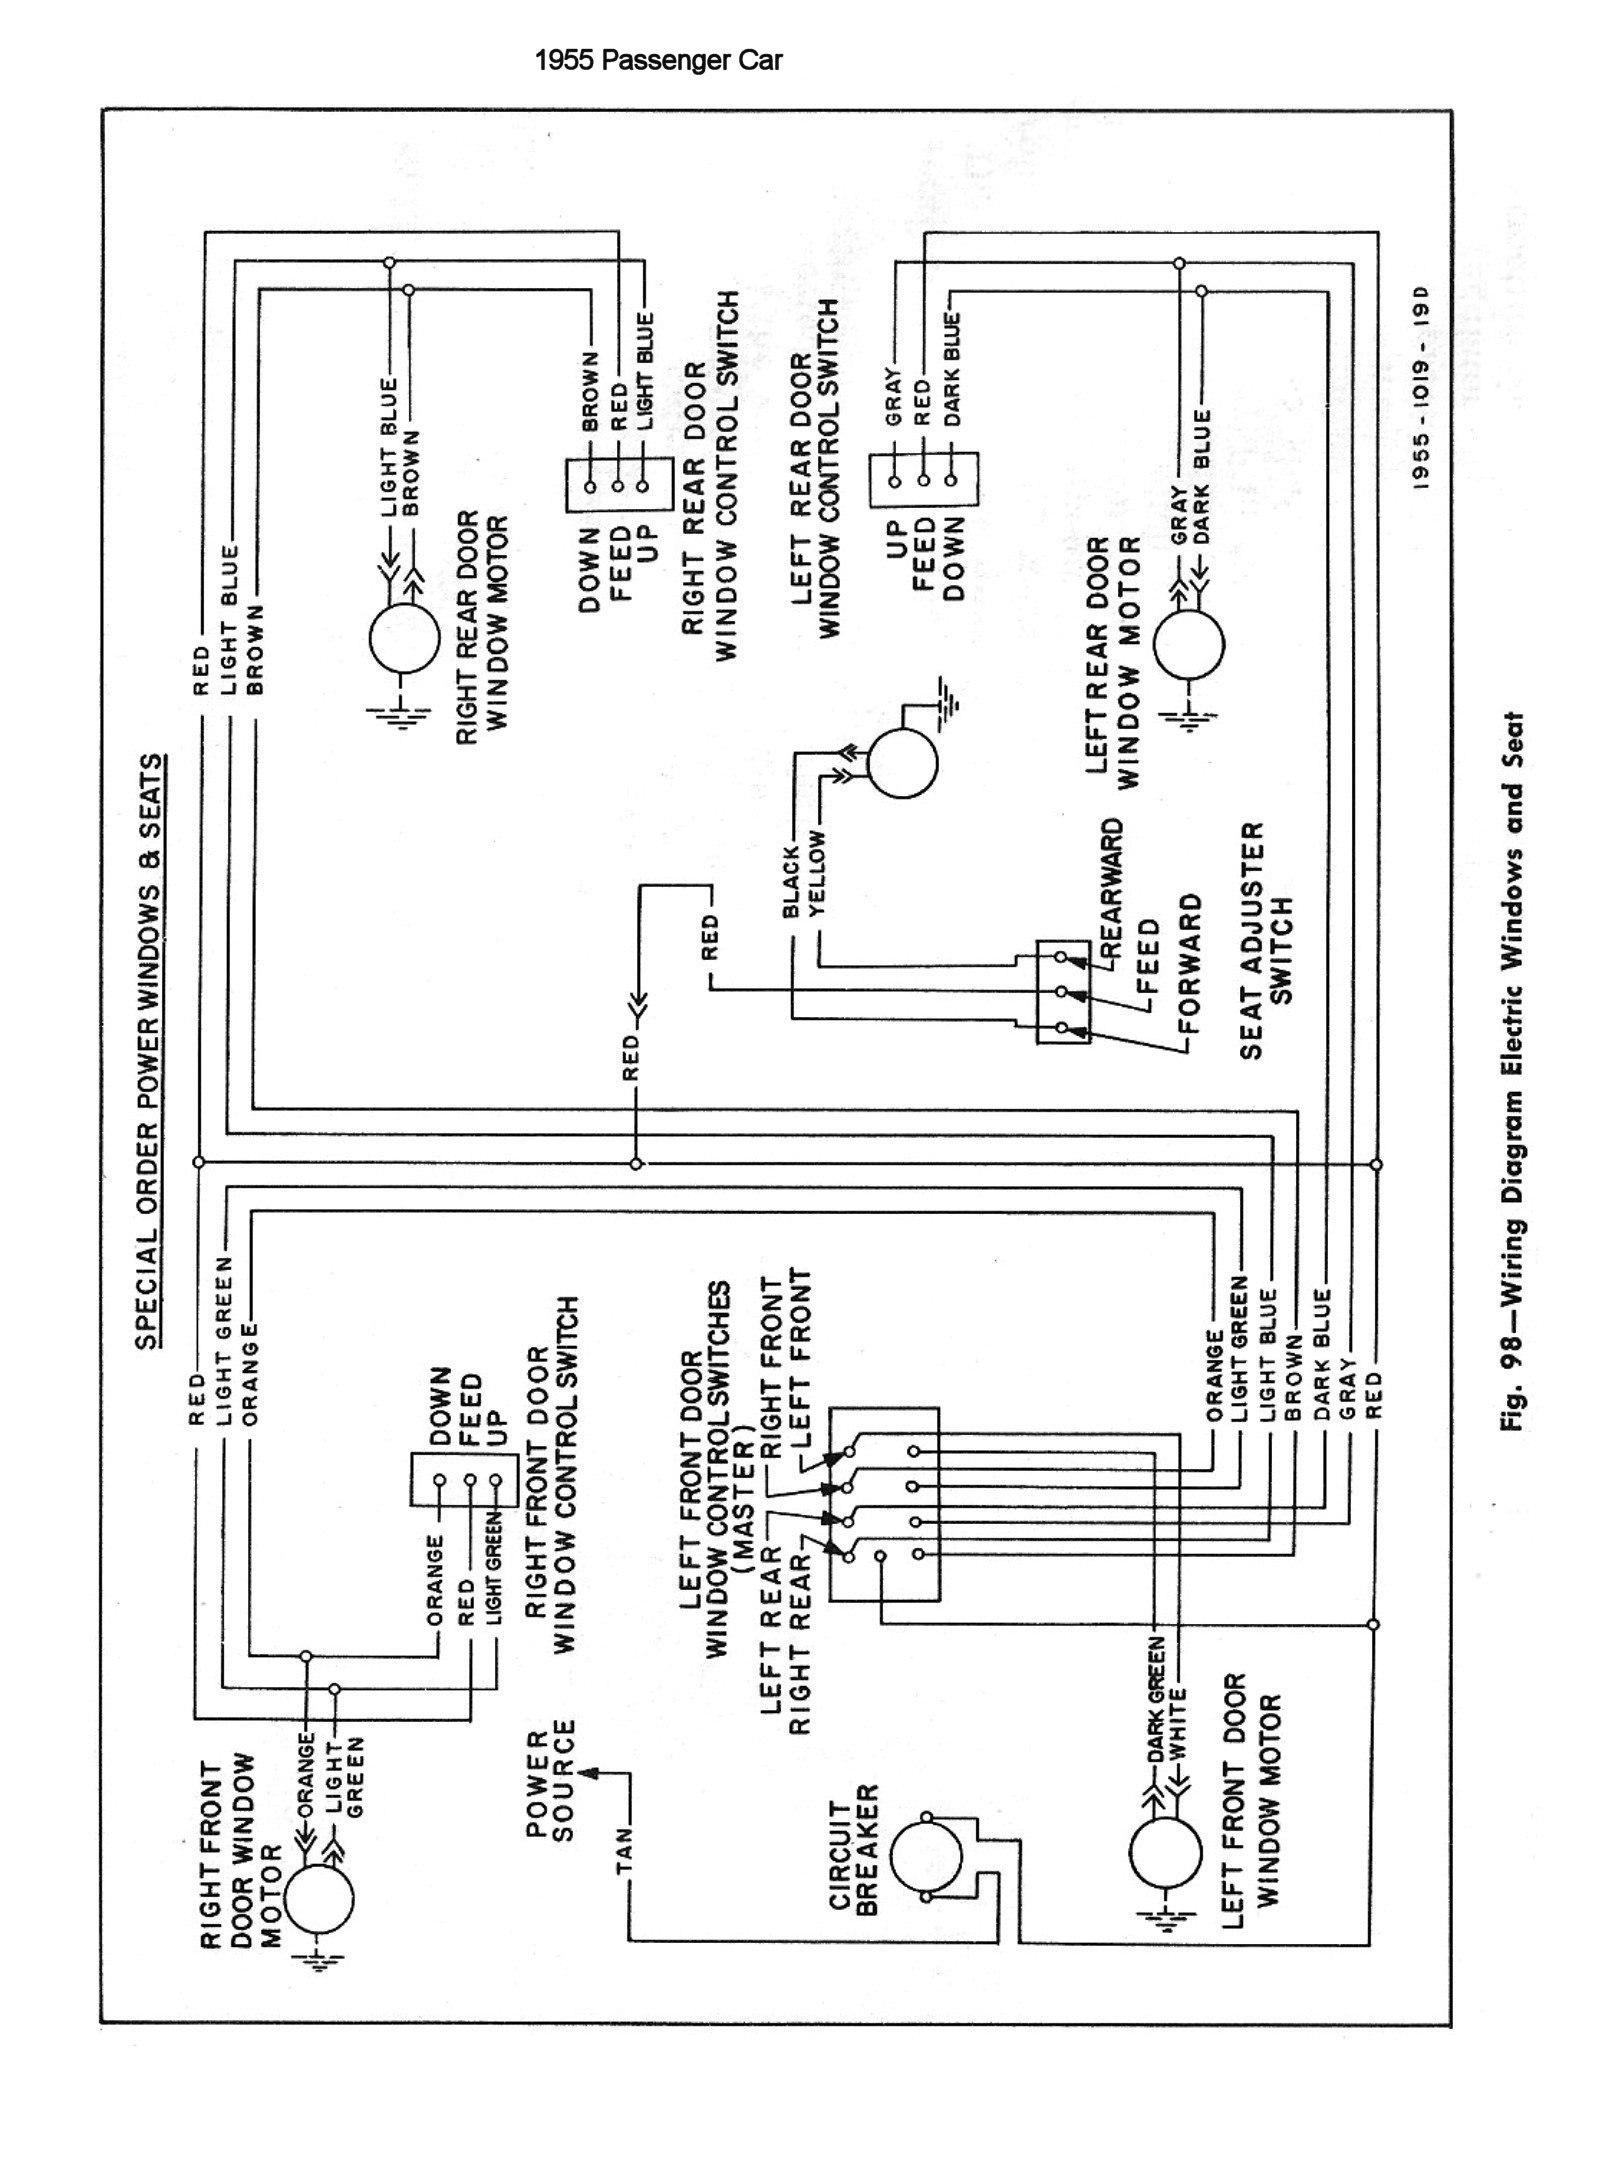 hight resolution of 1955 chevy truck wiring wiring diagram world 55 59 chevy truck wiring harness 55 chevy